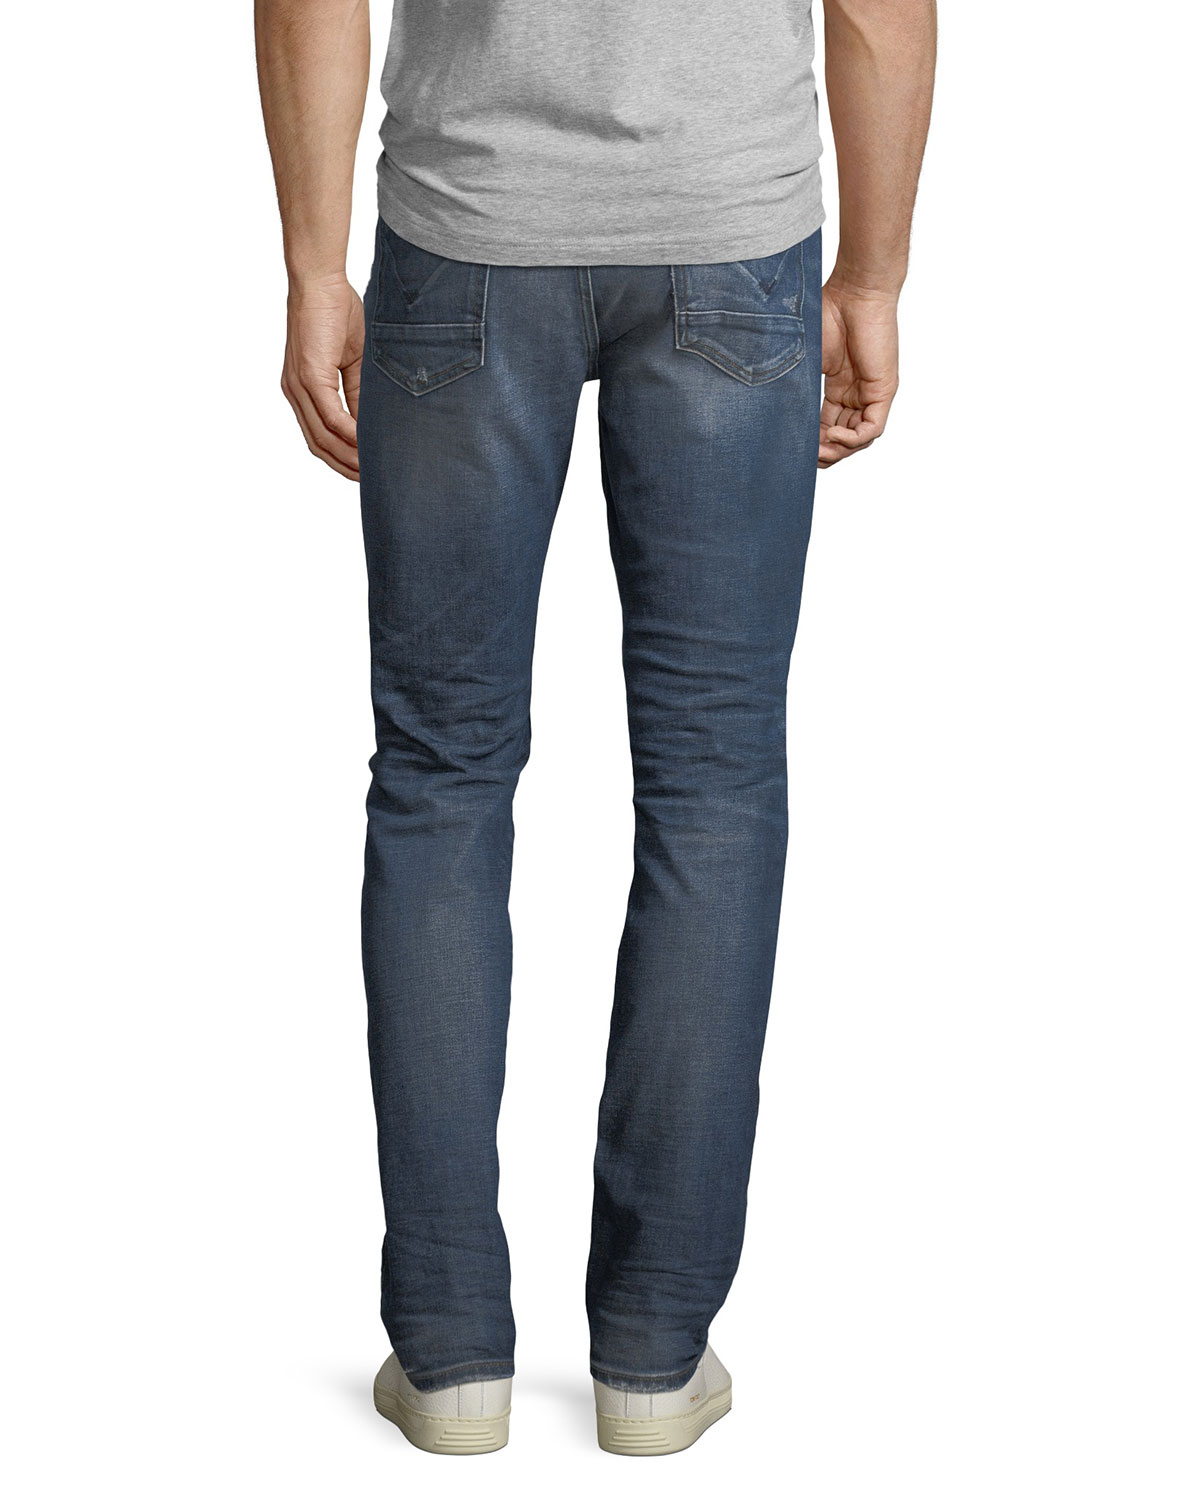 real quality shopping men/man Men's Sartor Slouchy Distressed Skinny Jeans, All City Blue